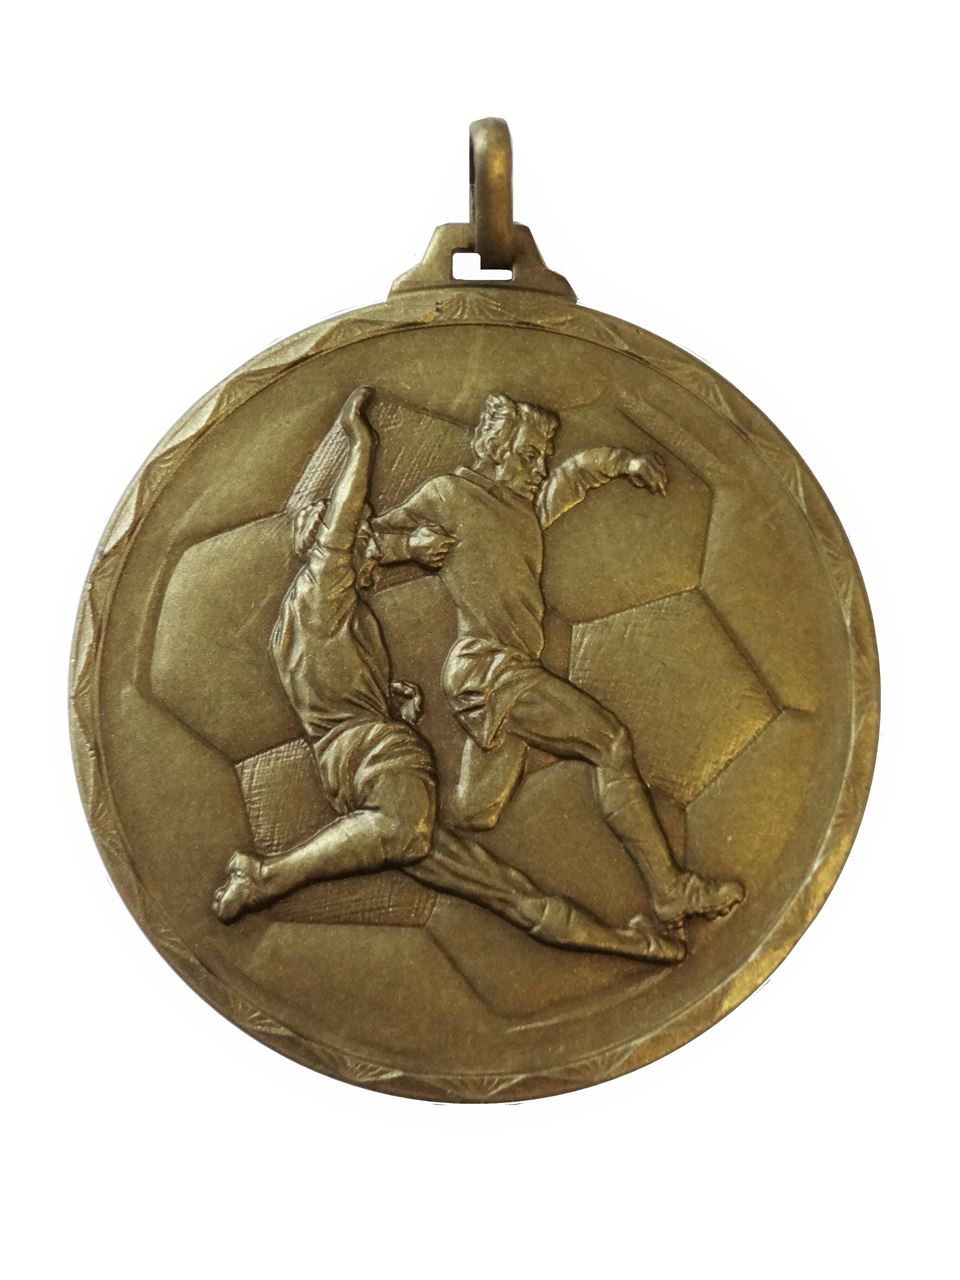 Bronze Economy Football Medal (size: 52mm) - 176E